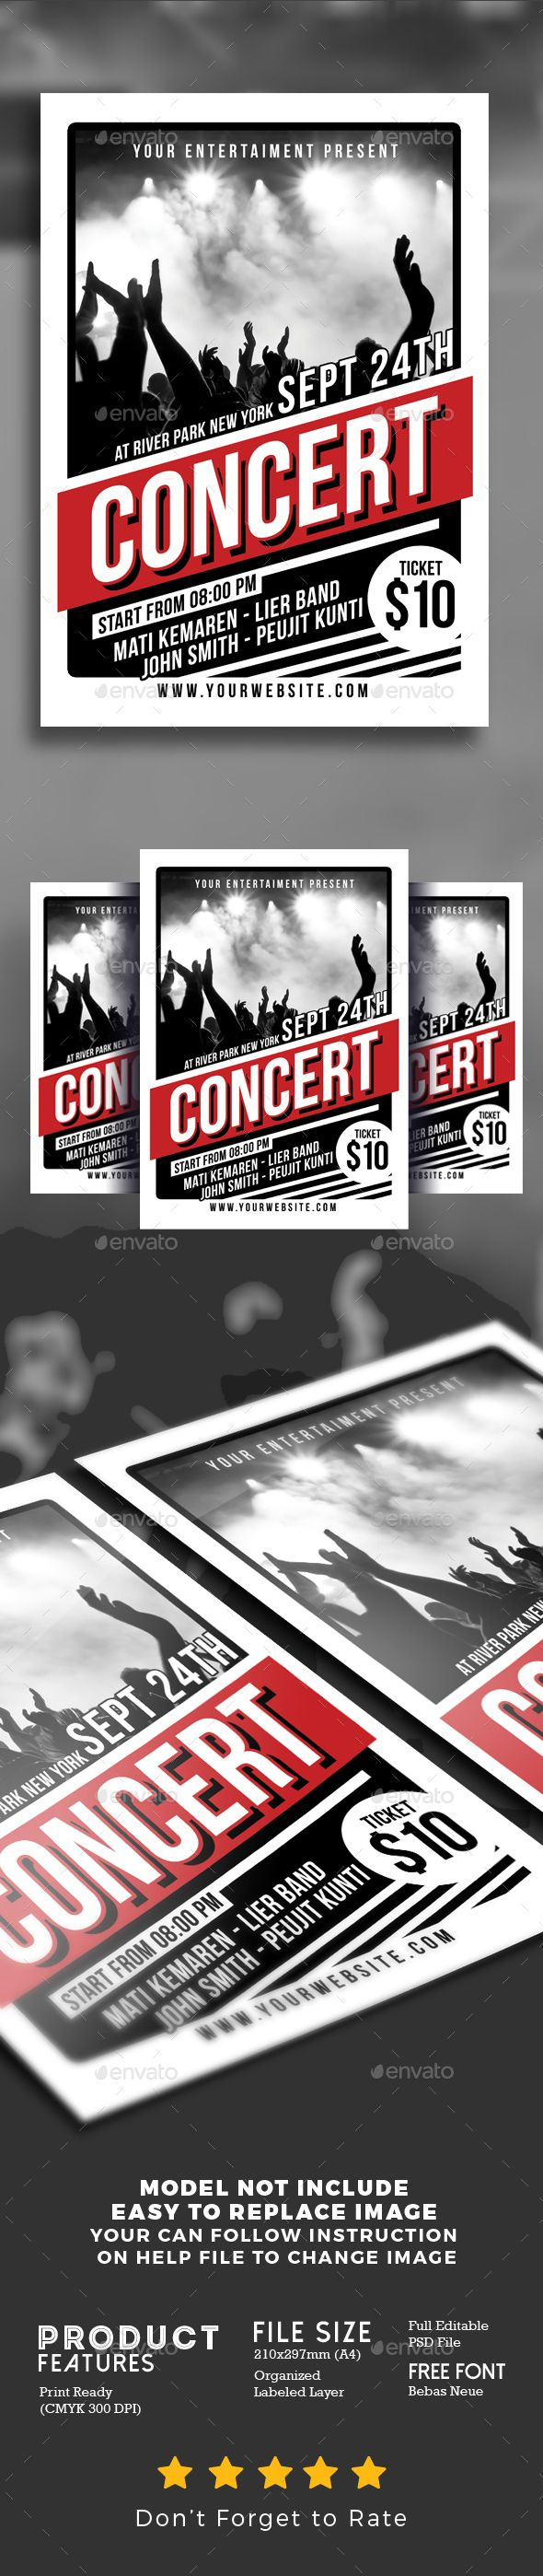 FLYER DESIGN IDEAS > Get even more flyer ideas from my Board: https://pinterest.com/analika3/flyer-ideas-flyer-design-inspiration/ << Click this link to get more ideas for your projects.... Music Concert Flyer Poster Template PSD _ Great inspiration for graphic designers in need of music concert flyer & poster templates ;)